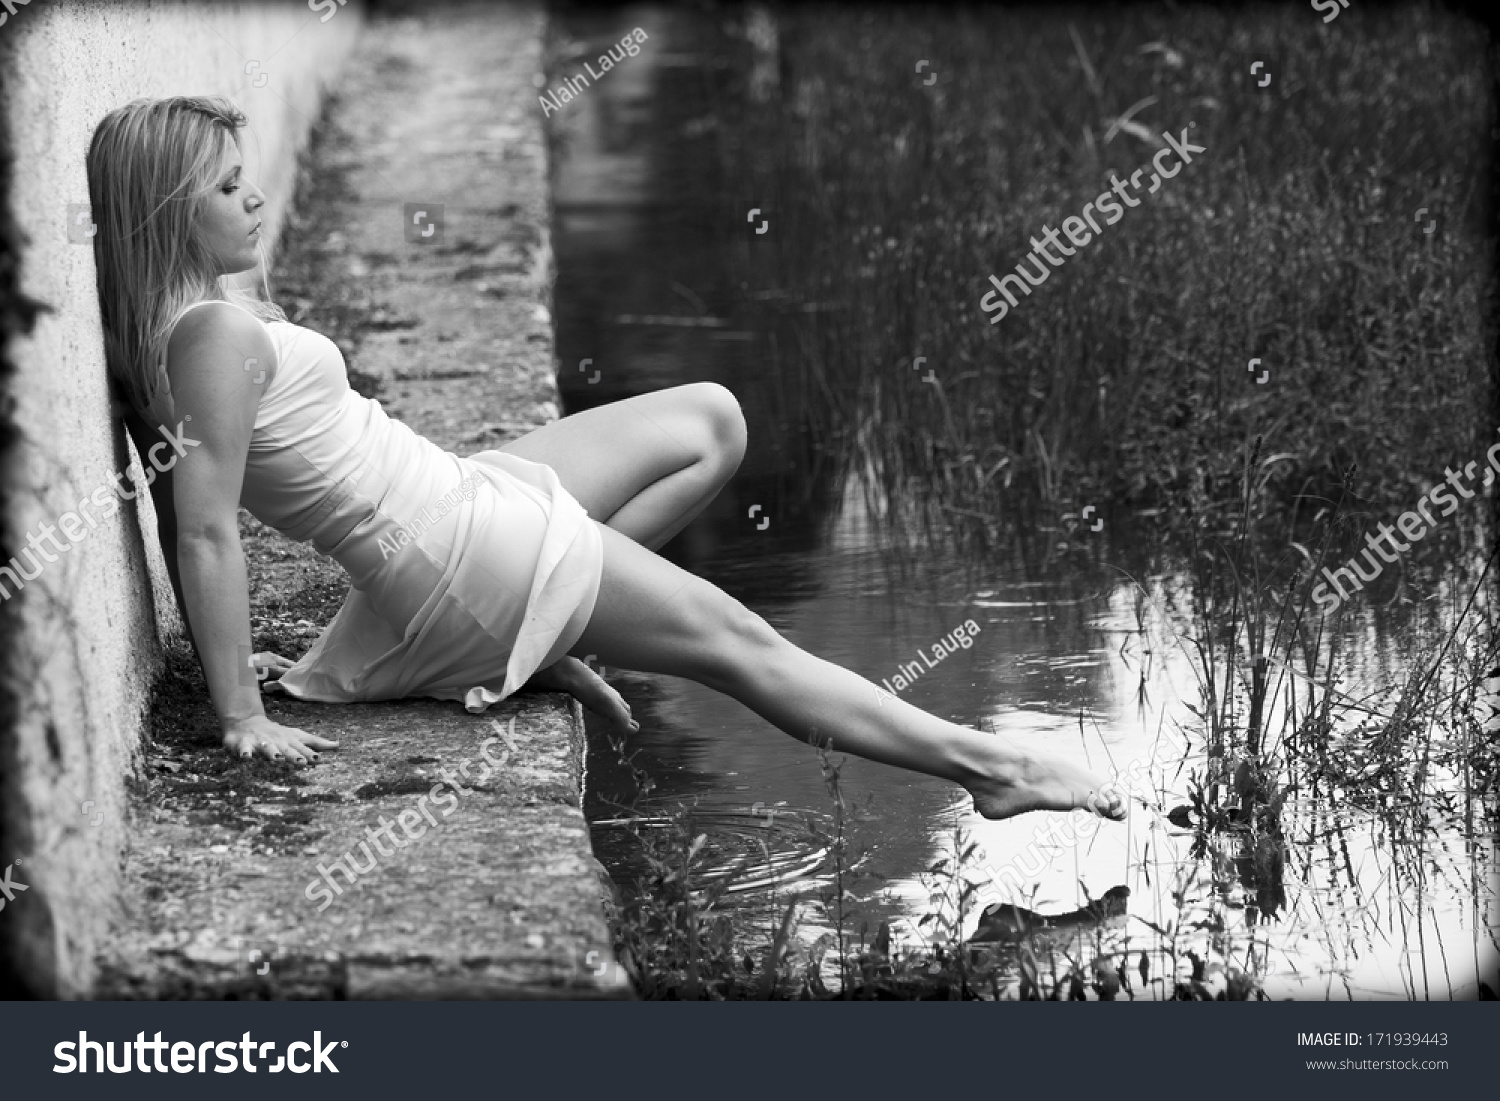 https://image.shutterstock.com/z/stock-photo-blonde-woman-wearing-a-white-dress-is-sitting-on-the-edge-of-a-pond-she-is-barefoot-she-tries-171939443.jpg